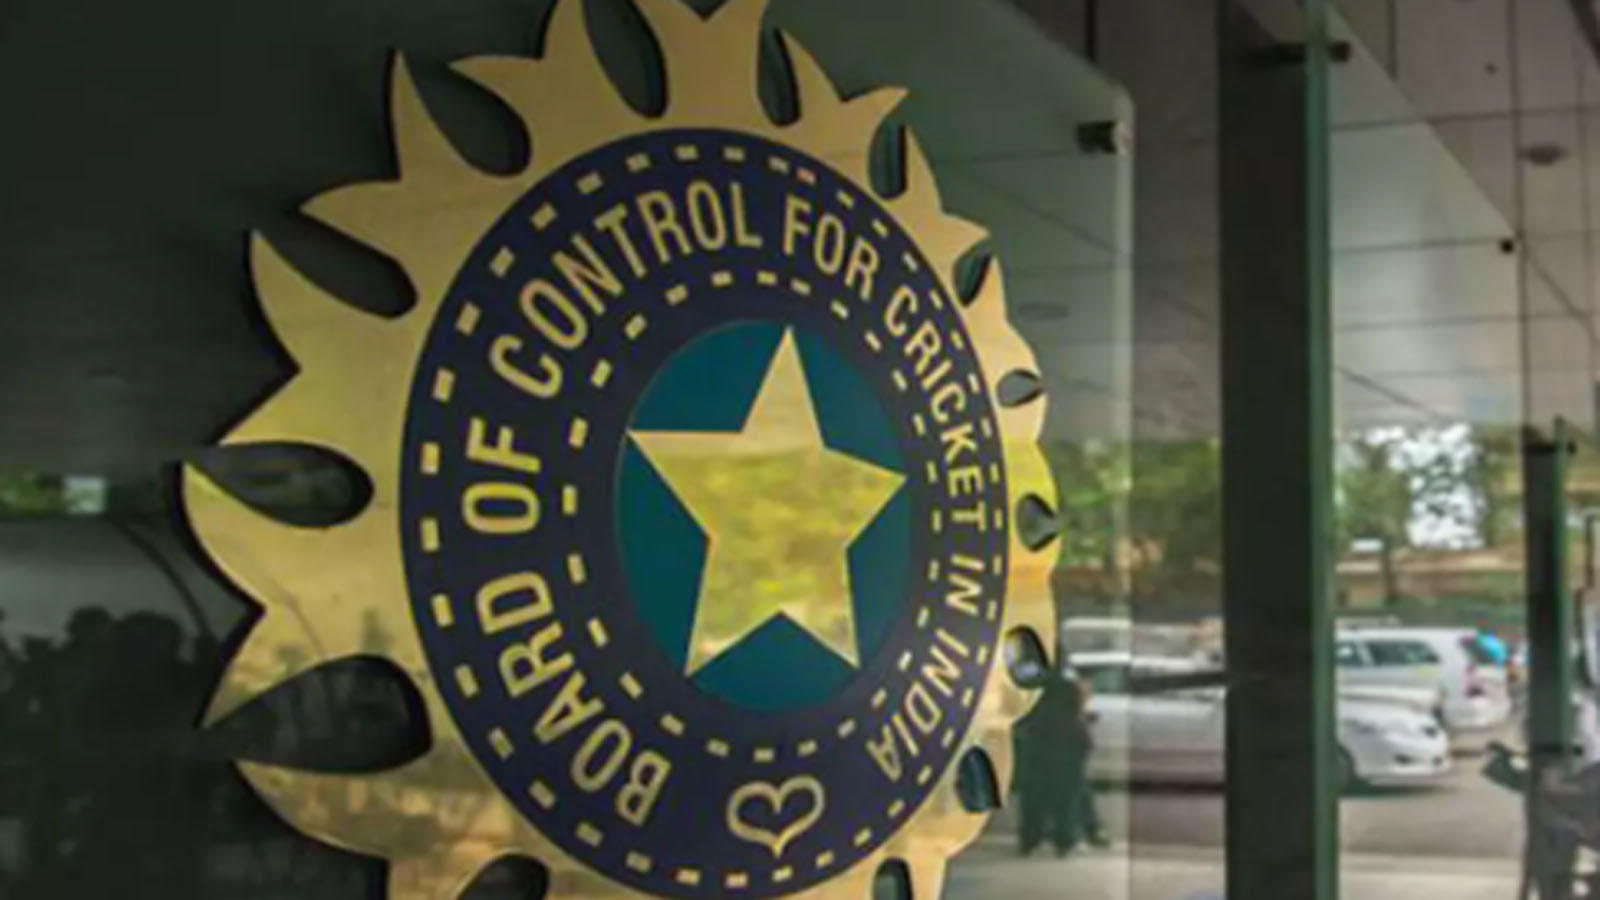 ipl-no-changes-in-match-locations-says-bcci